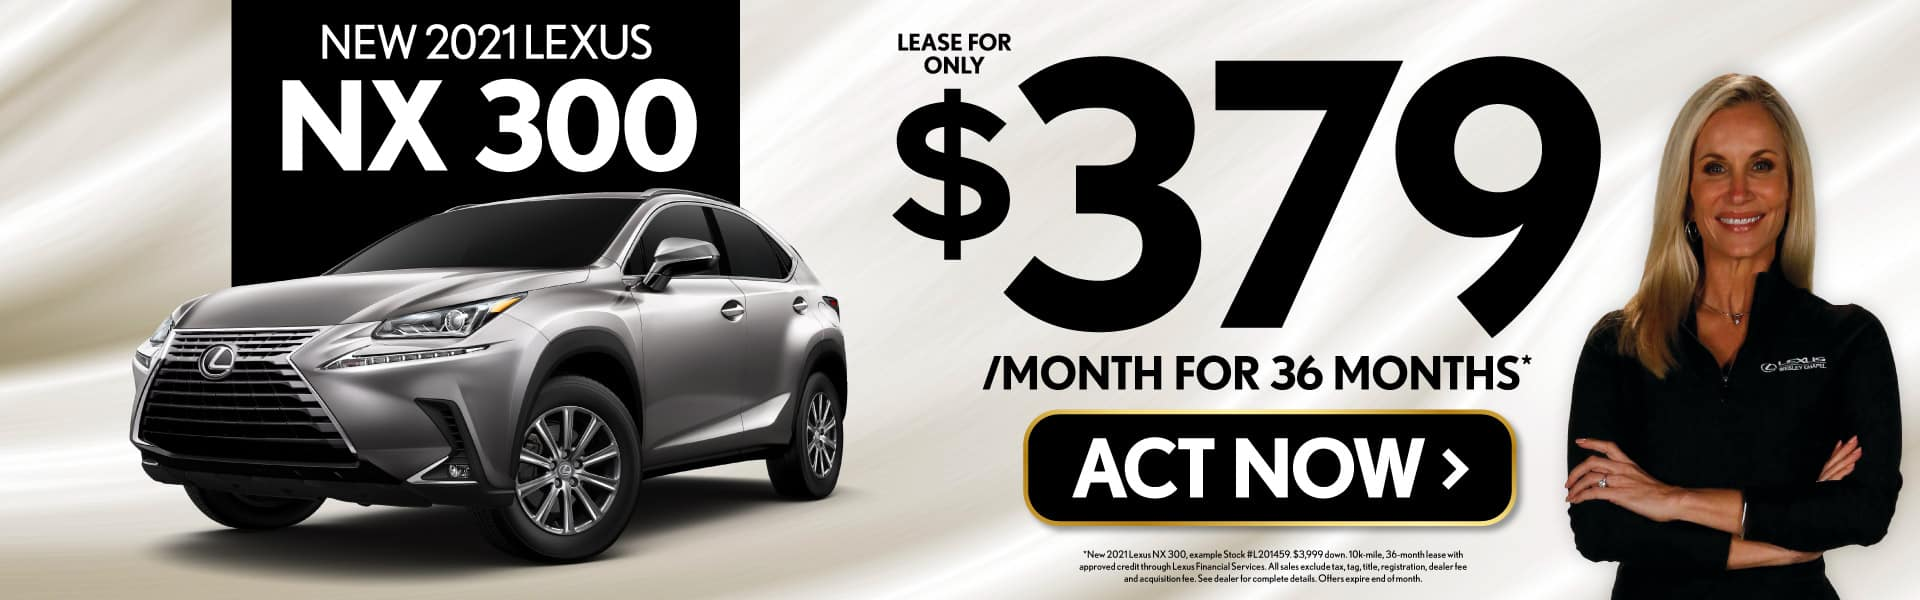 New 2021 Lexus NX 300 lease for $379/month - ACT NOW